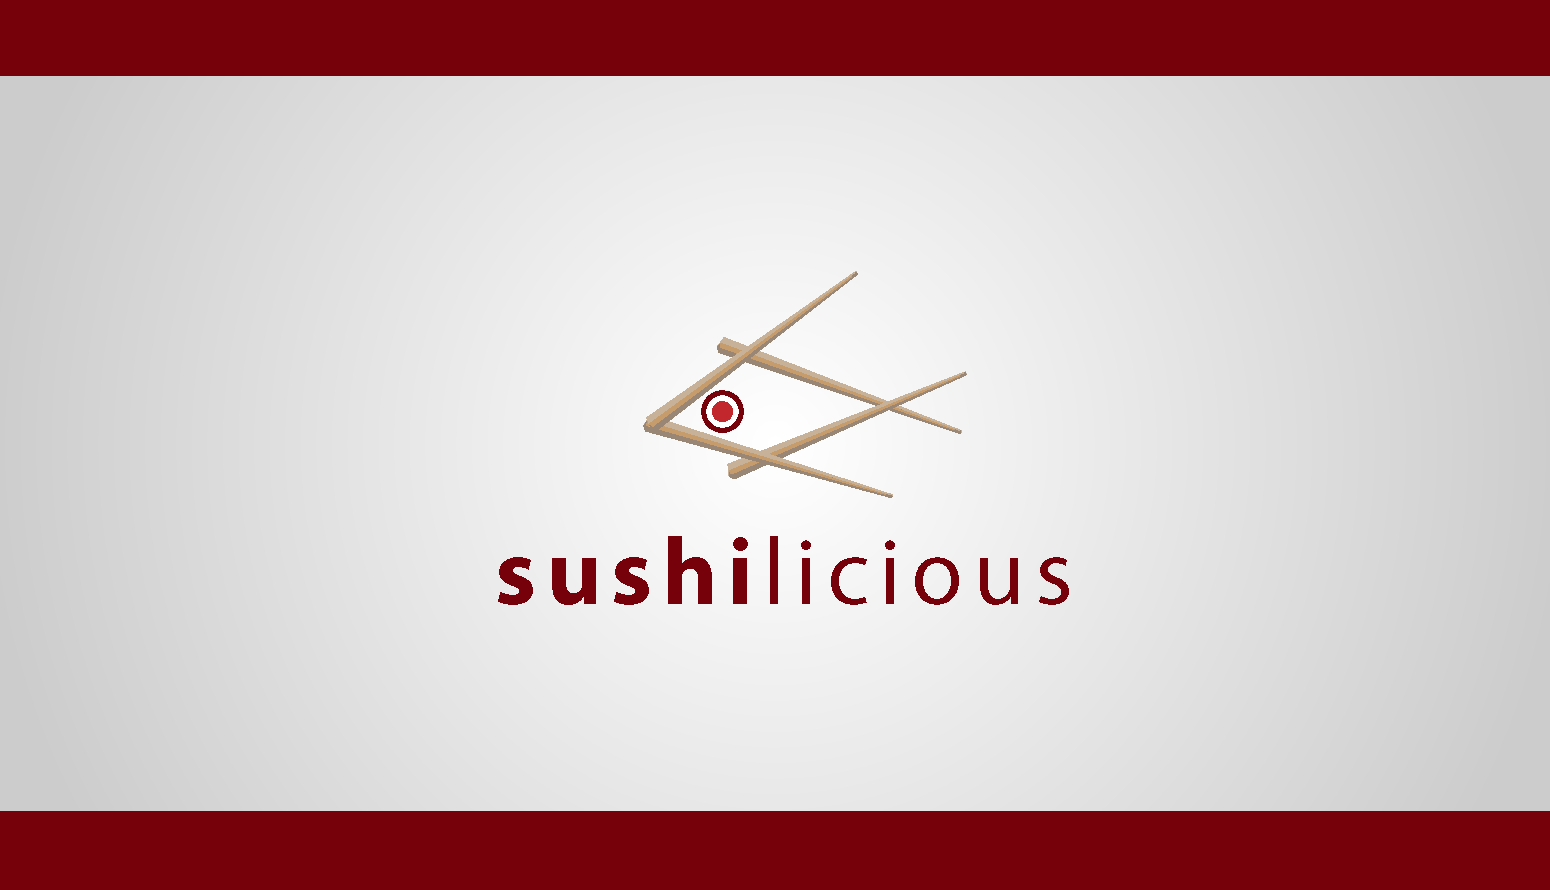 New logo wanted for Sushilicious